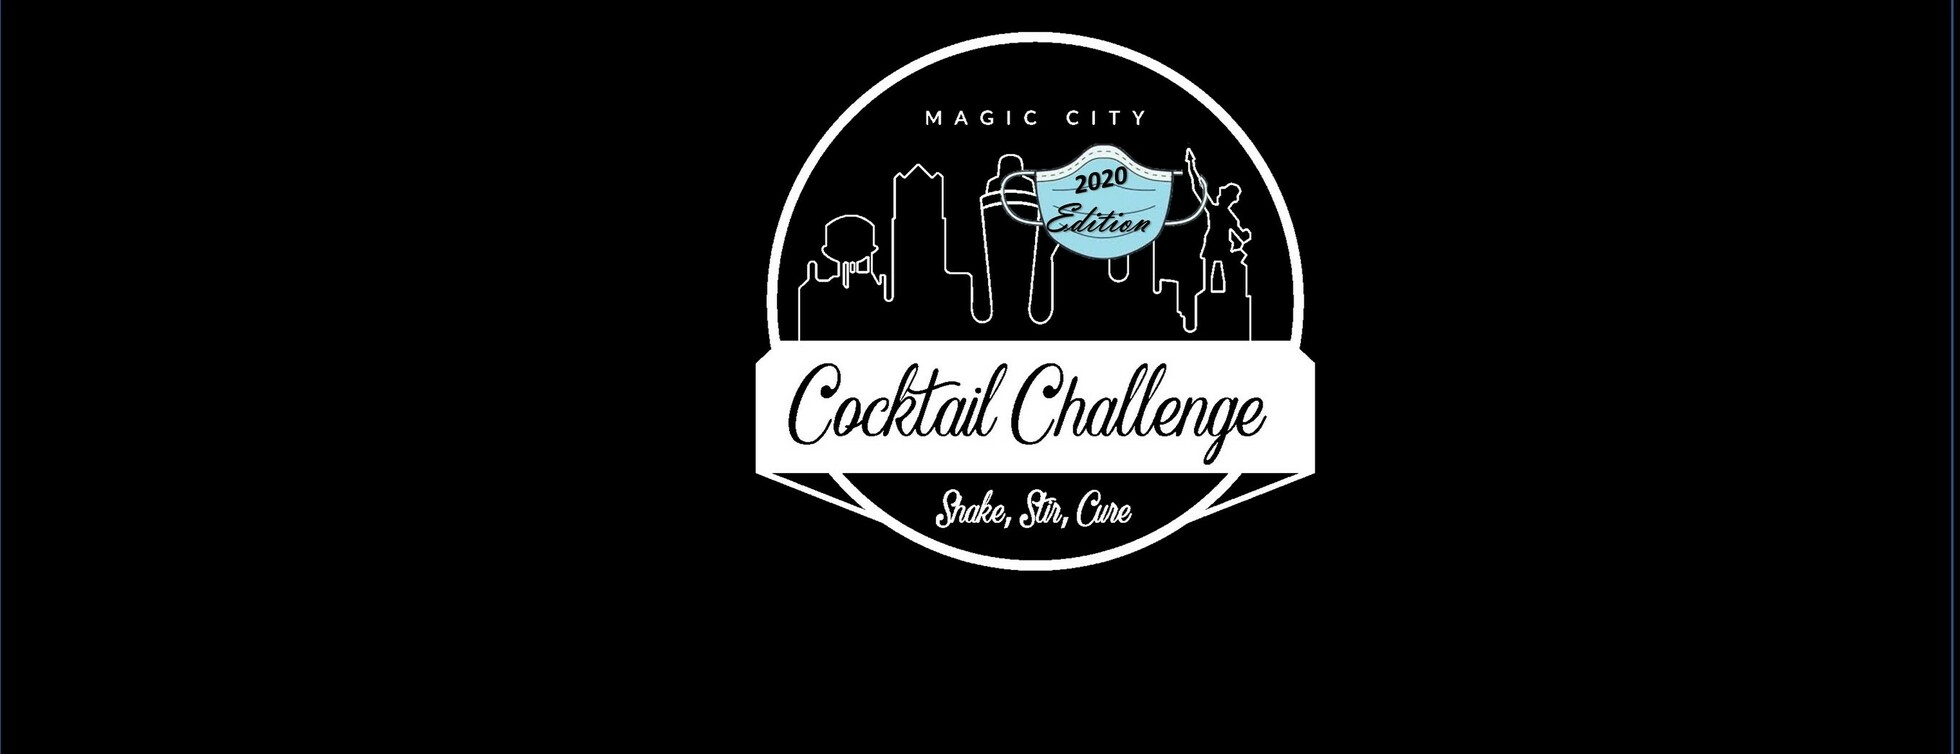 Magic City Cocktail Challenge - 2020 Edition